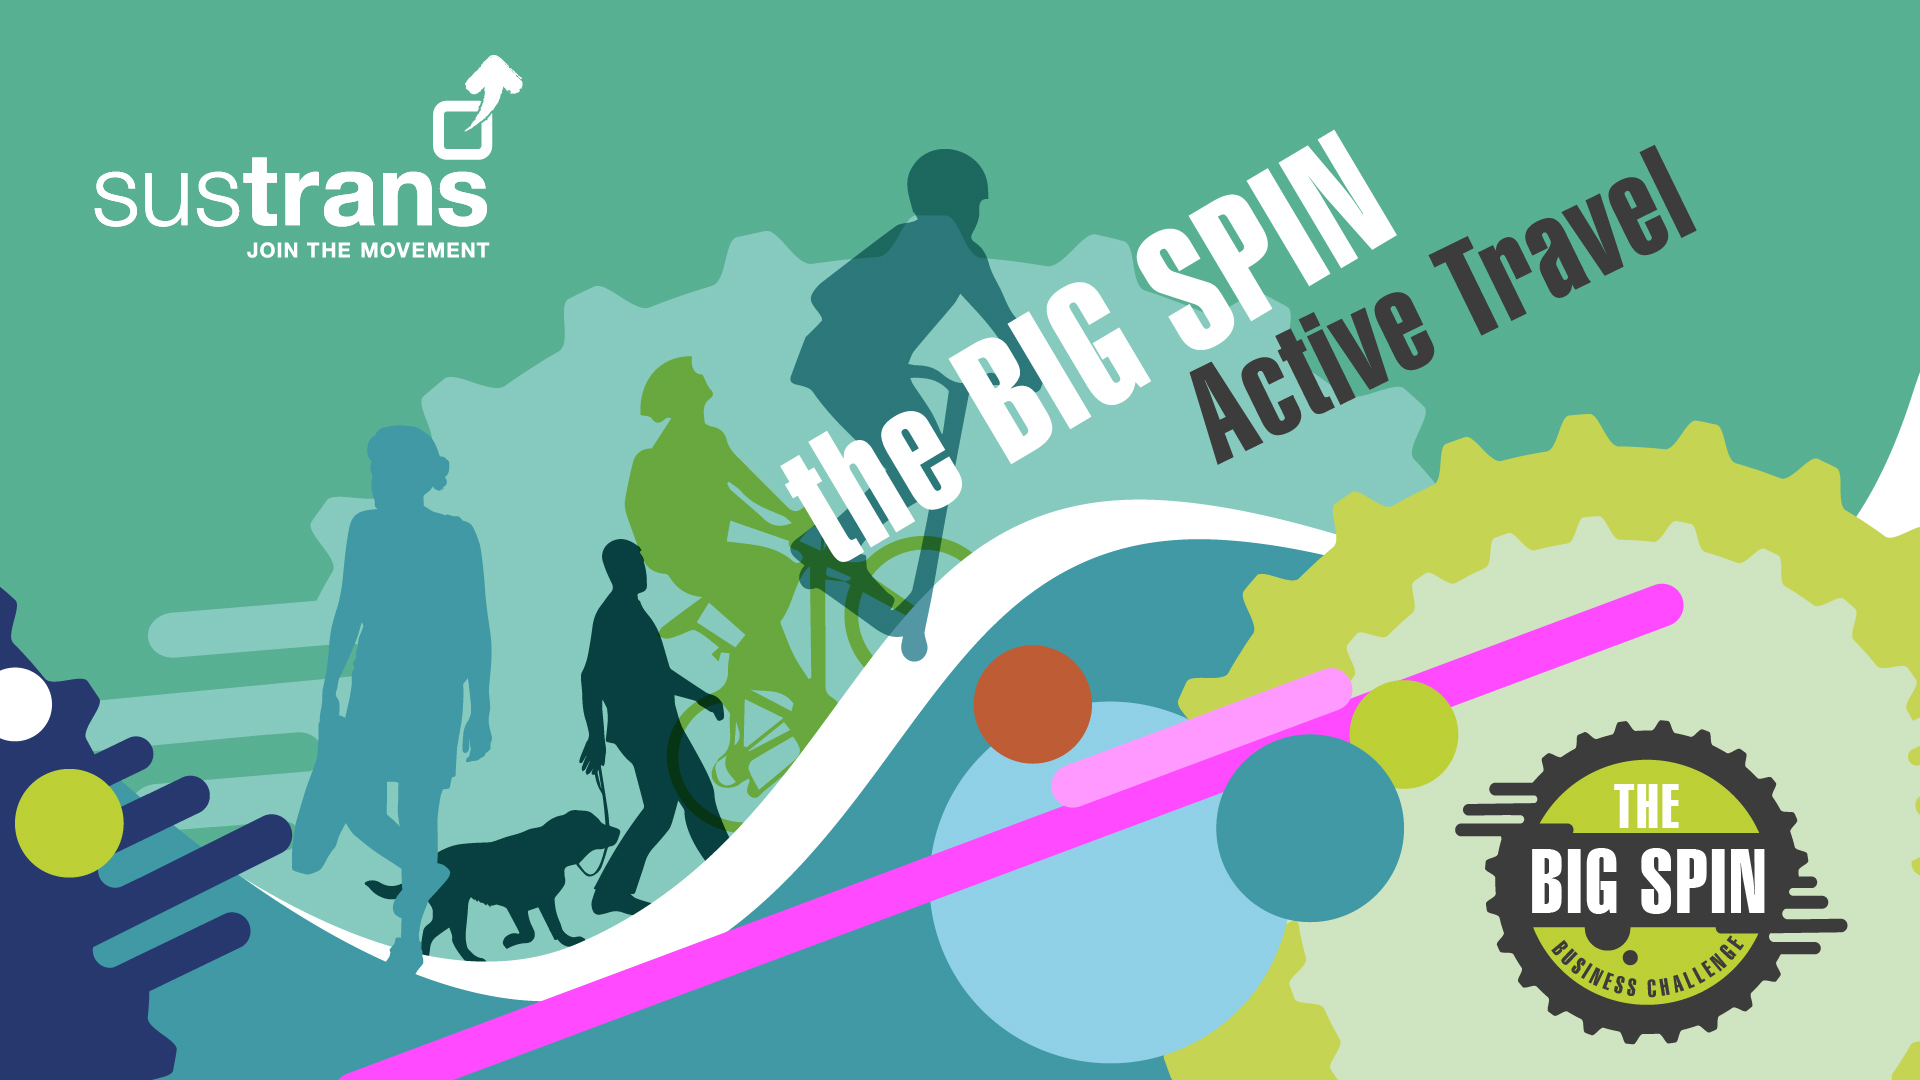 Big Spin Active Travel